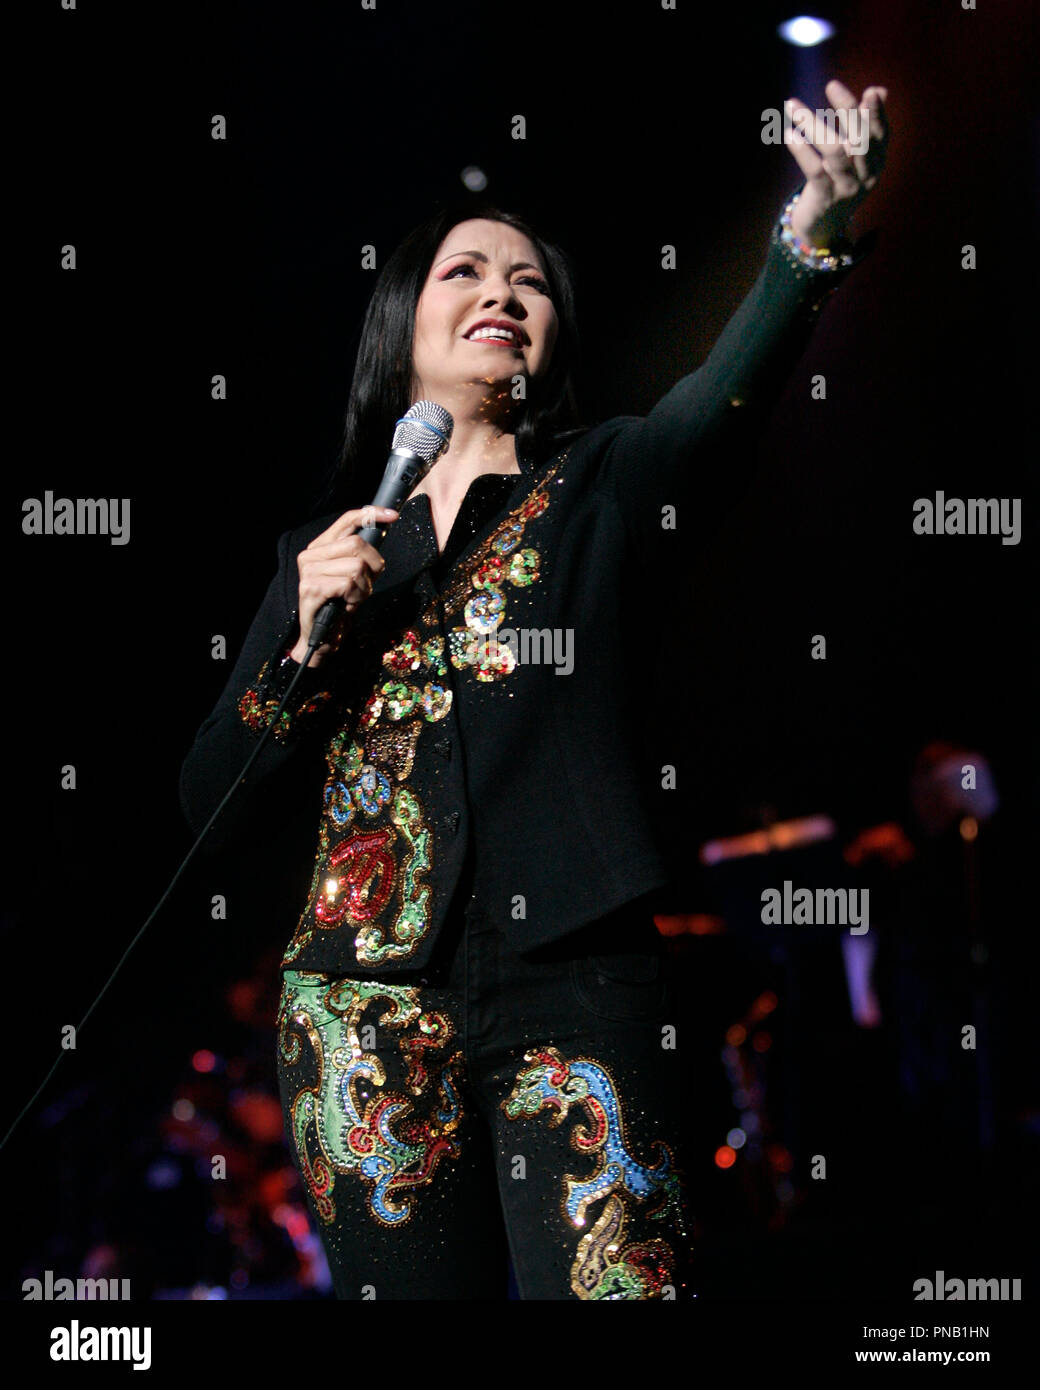 Ana Gabriel Performs In Concert At The Seminole Hard Rock Hotel And Casino In Hollywood Florida On May 17 2006 Stock Photo Alamy